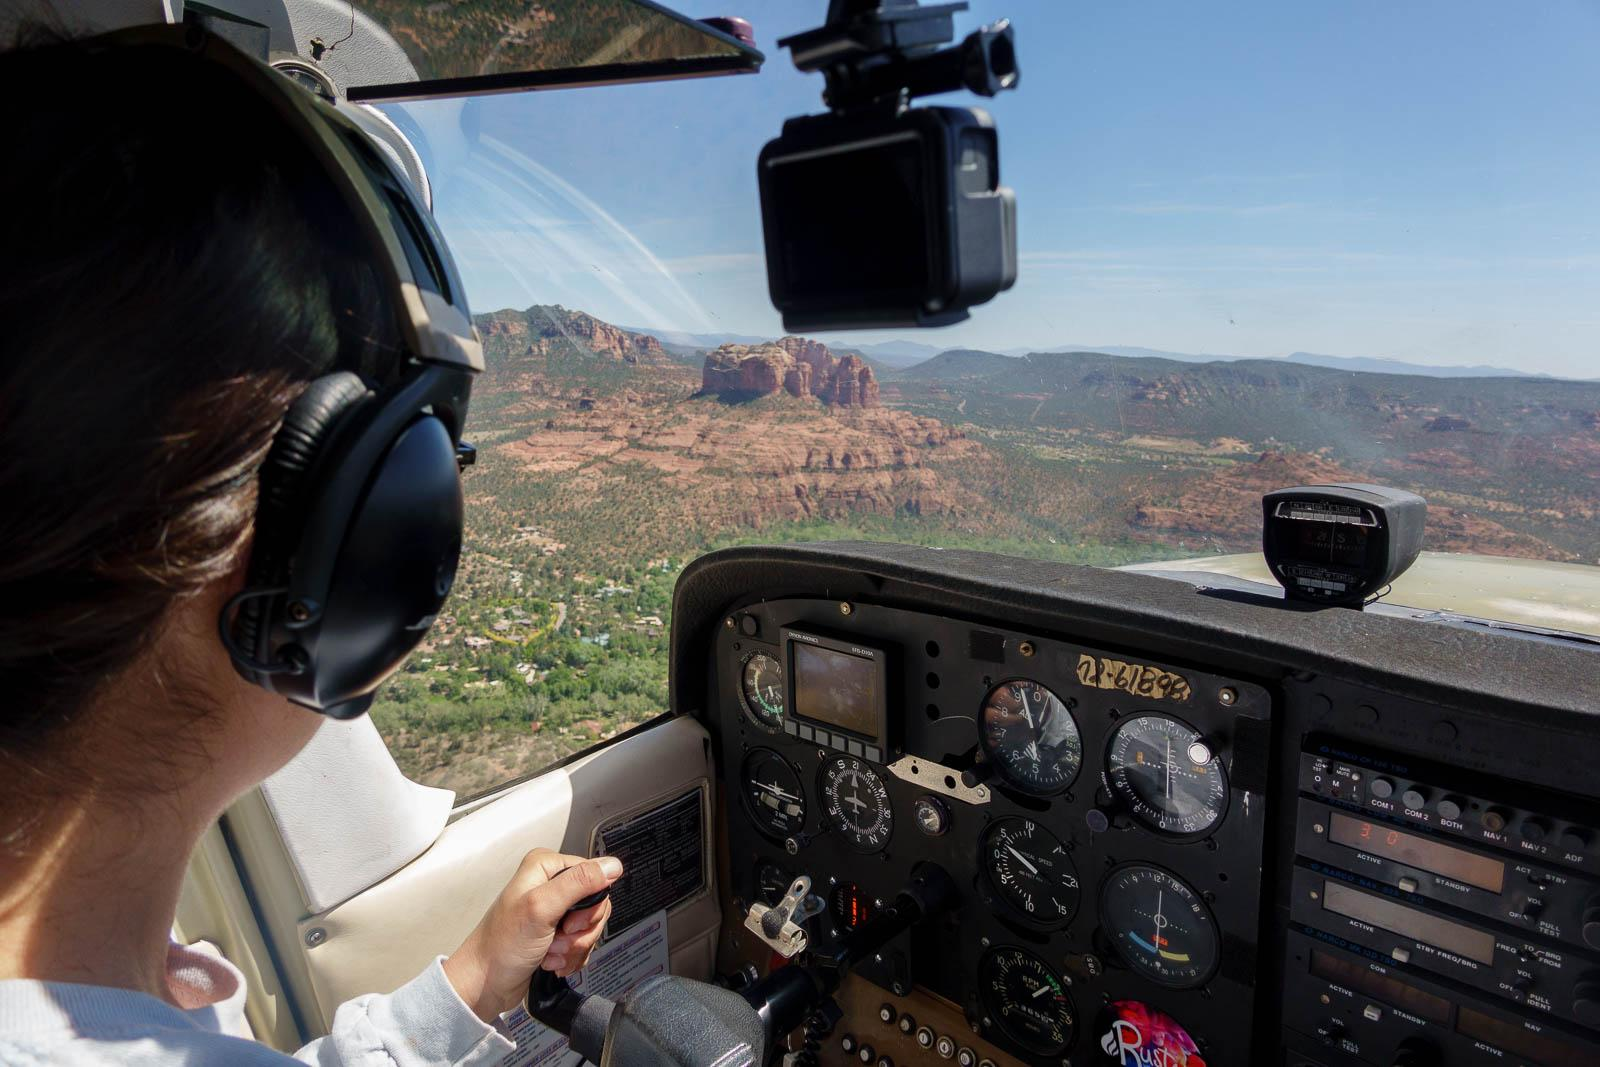 Approach to Sedona, AZ